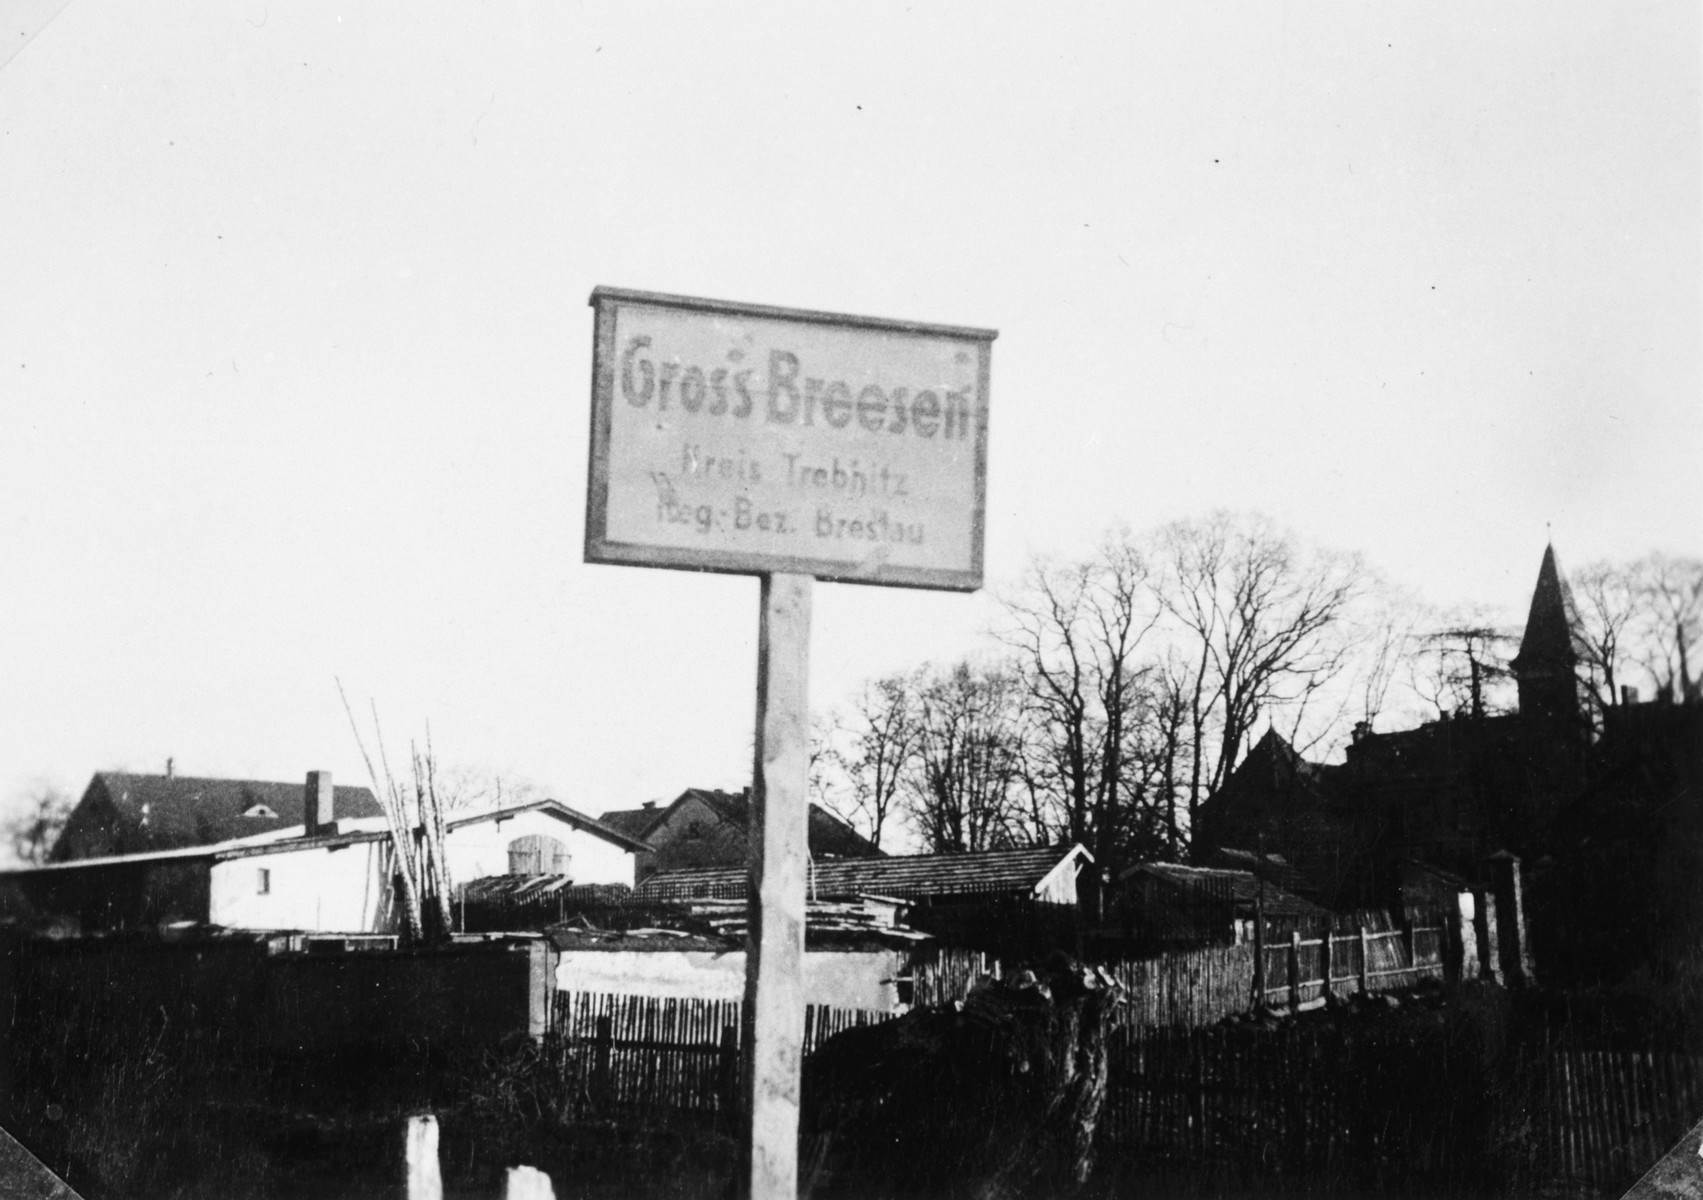 Close-up of a sign at the entrance of the Gross Breesen training farm, near Breslau.